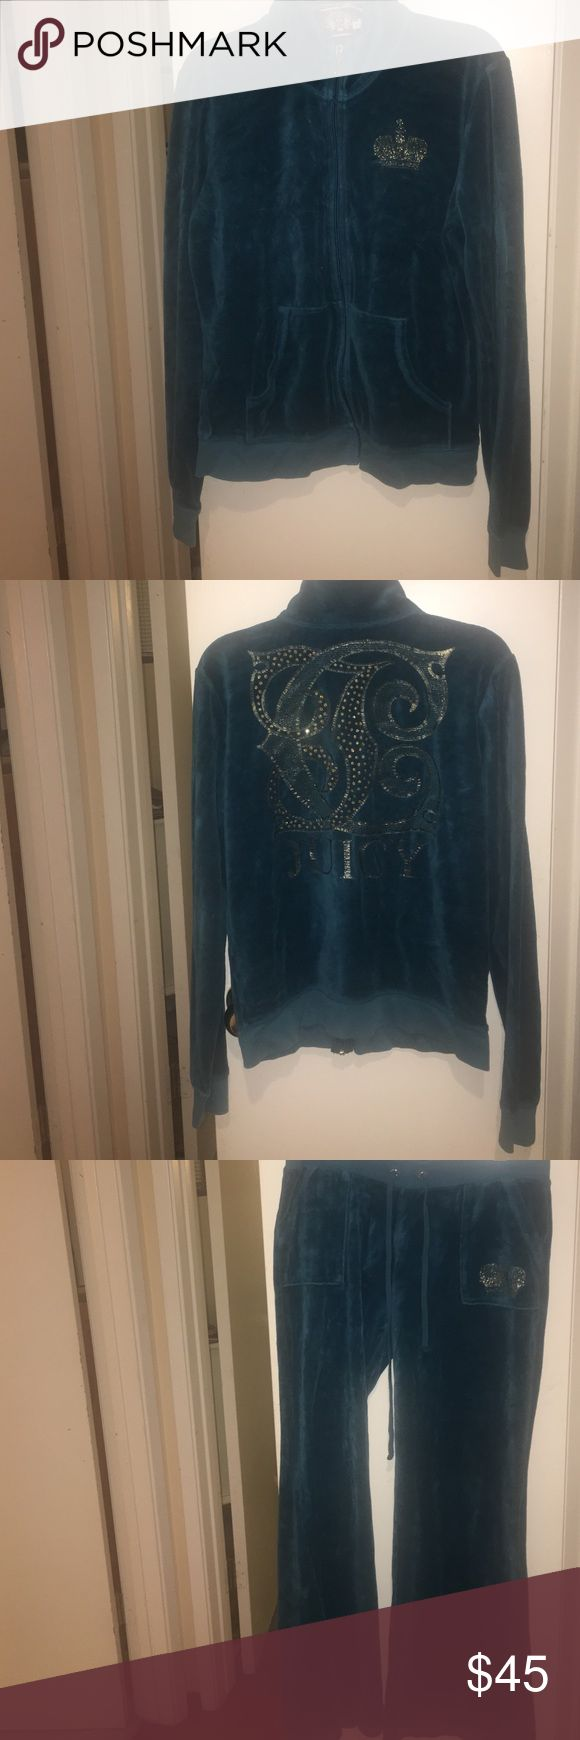 Juicy couture sweatsuit. Beautiful blue sweatsuit! Worn about 5 times so still like new!! The pants are flare and Size M, the track jacket too is a size L. Juicy Couture Tops Sweatshirts & Hoodies